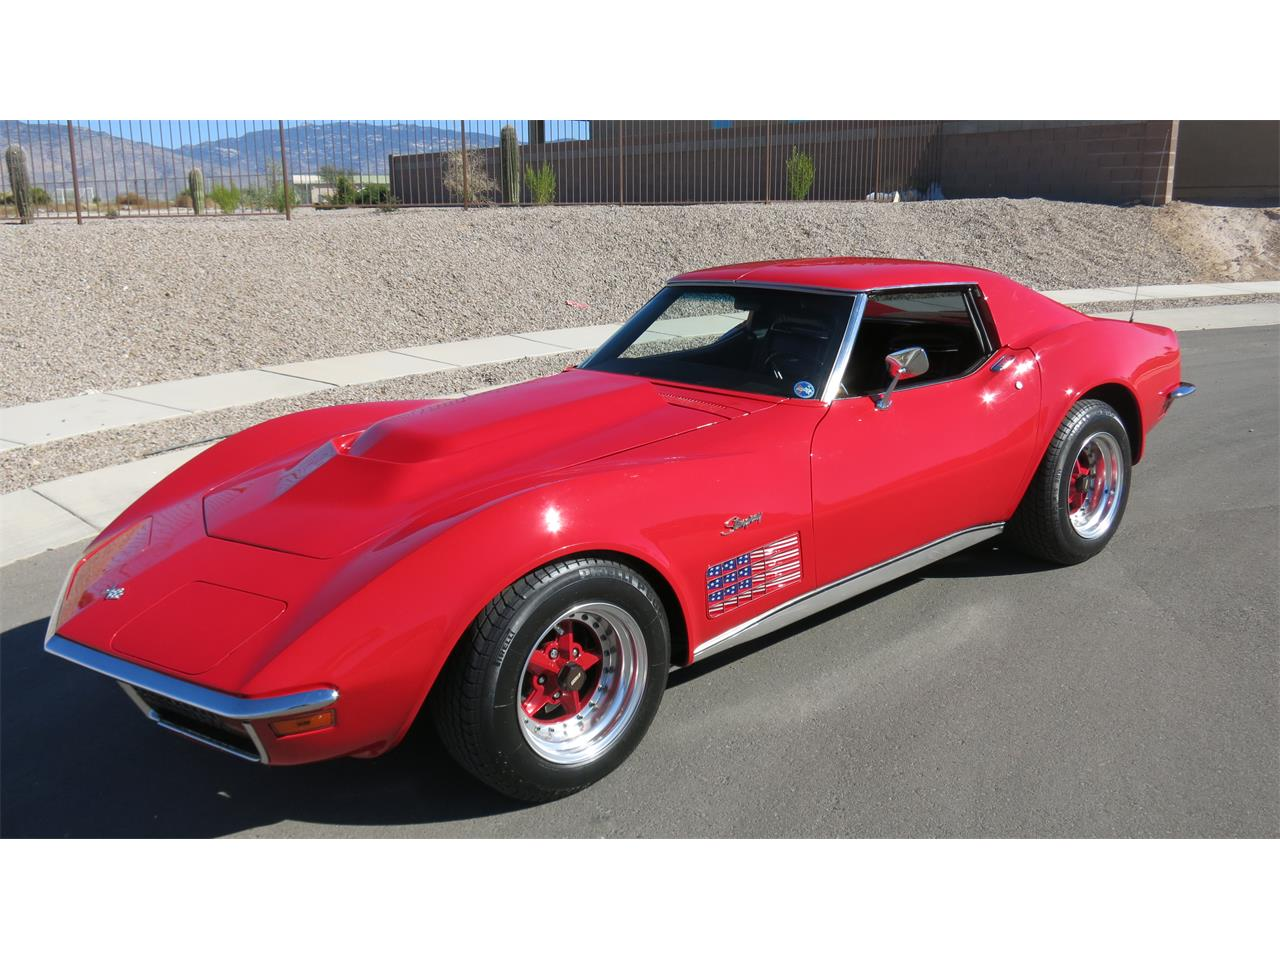 Large Picture of '72 Chevrolet Corvette located in Vail Arizona - $25,000.00 - OCSF